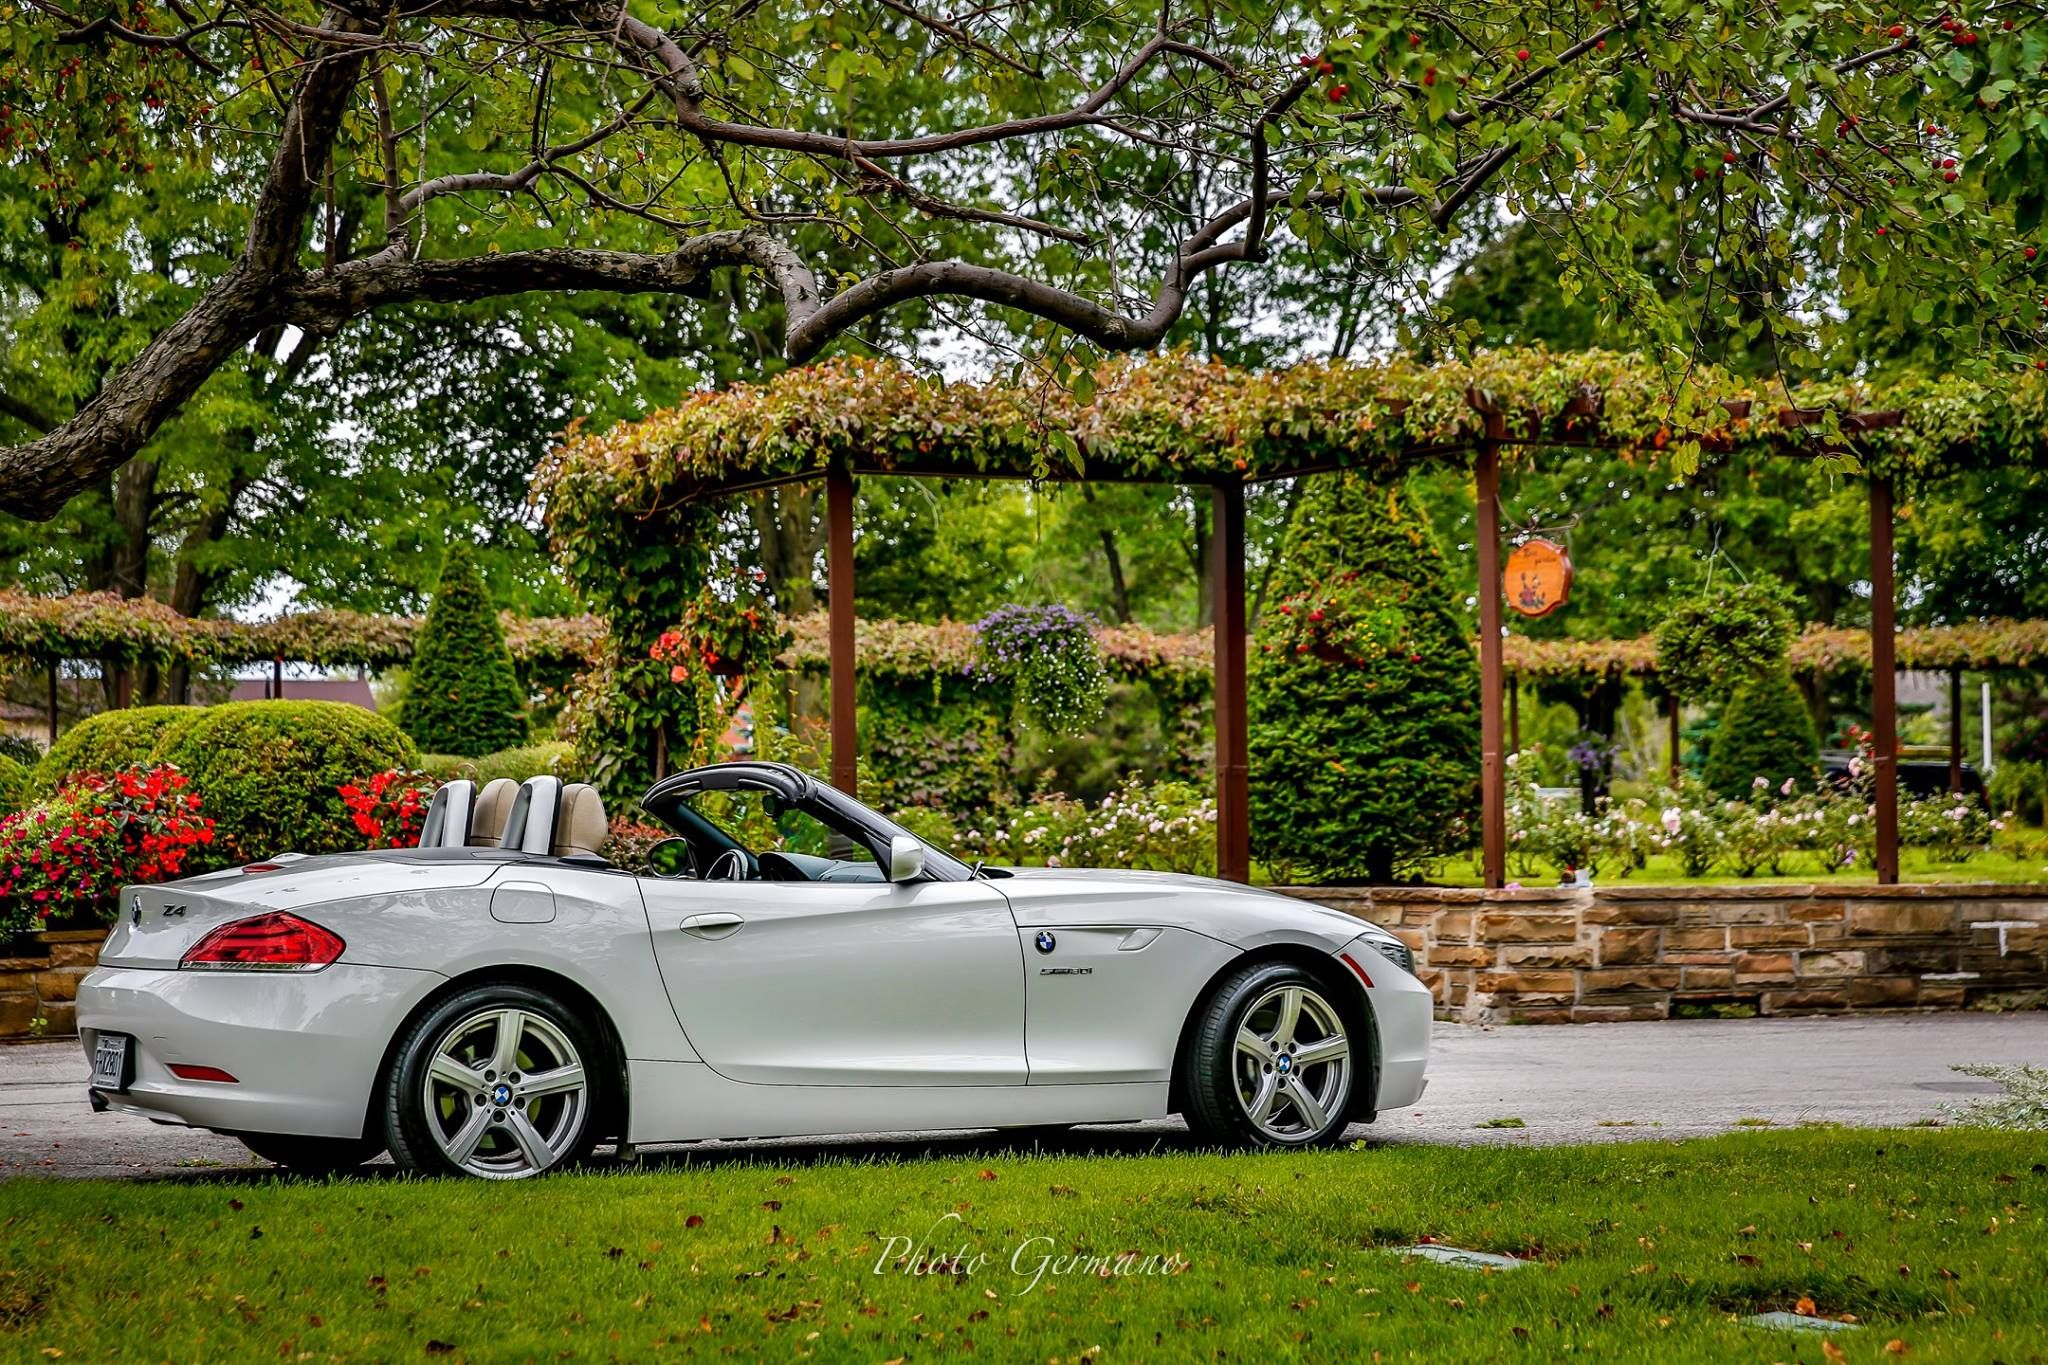 Photogermano Riding In This Beautiful Rental Bmw Z4 From